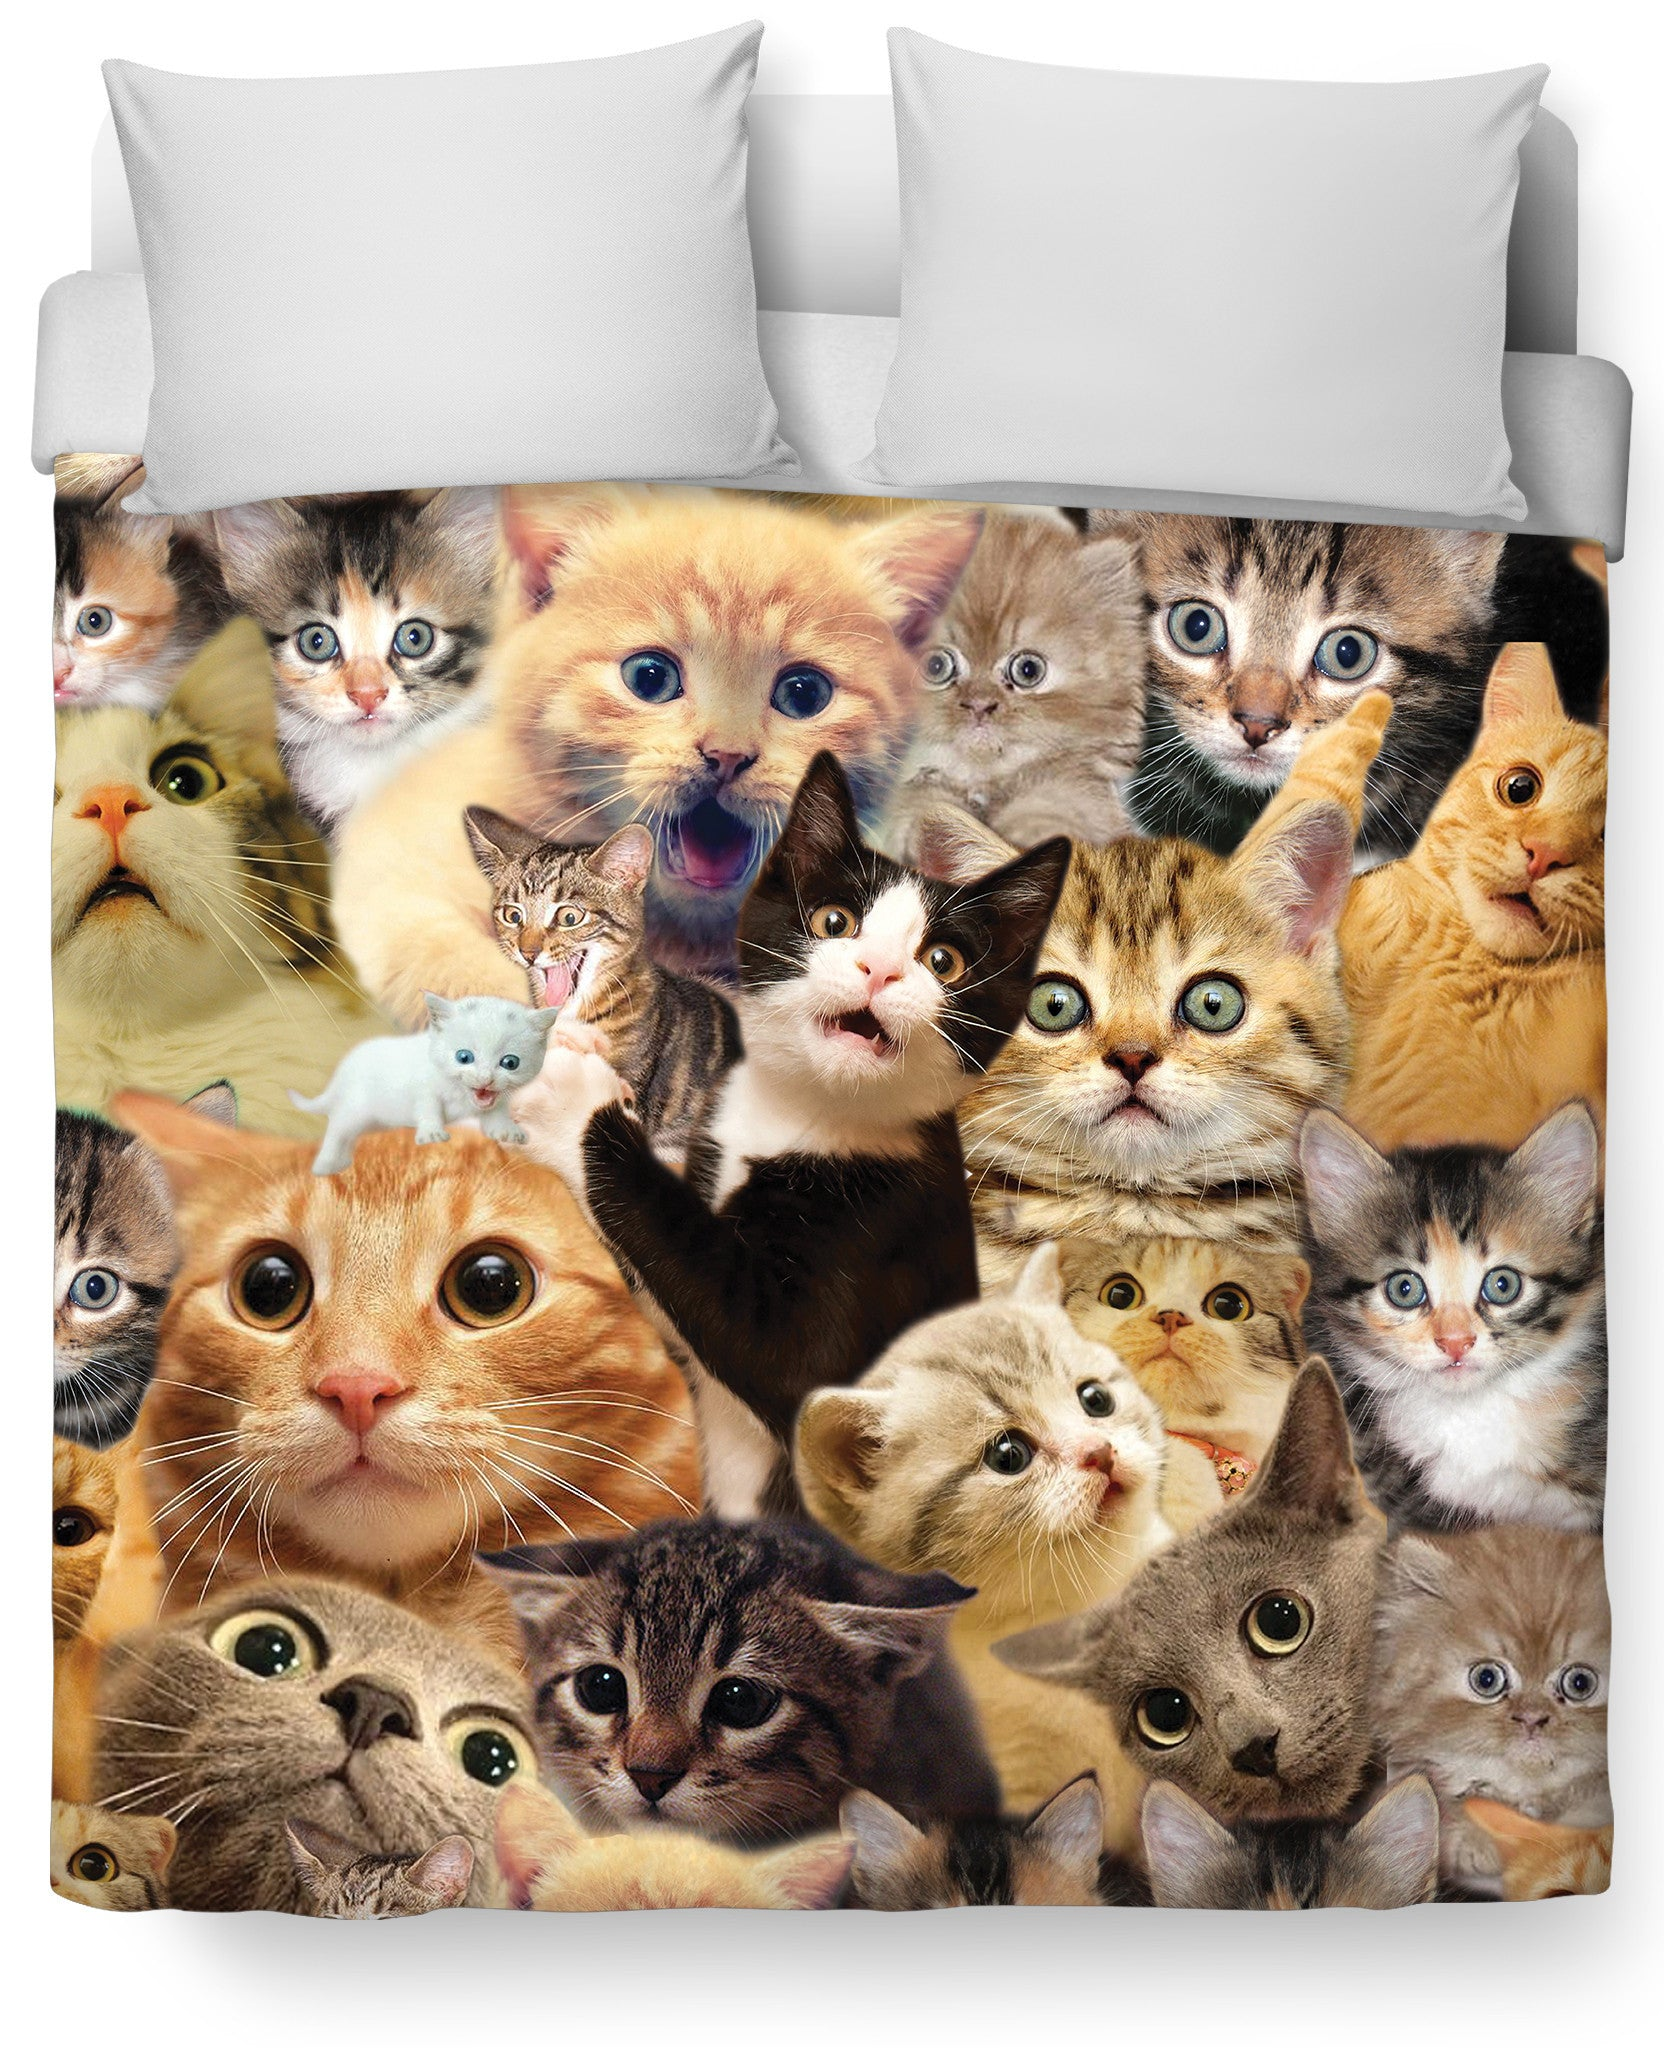 Surprised Cats All-Over Print Duvet Cover